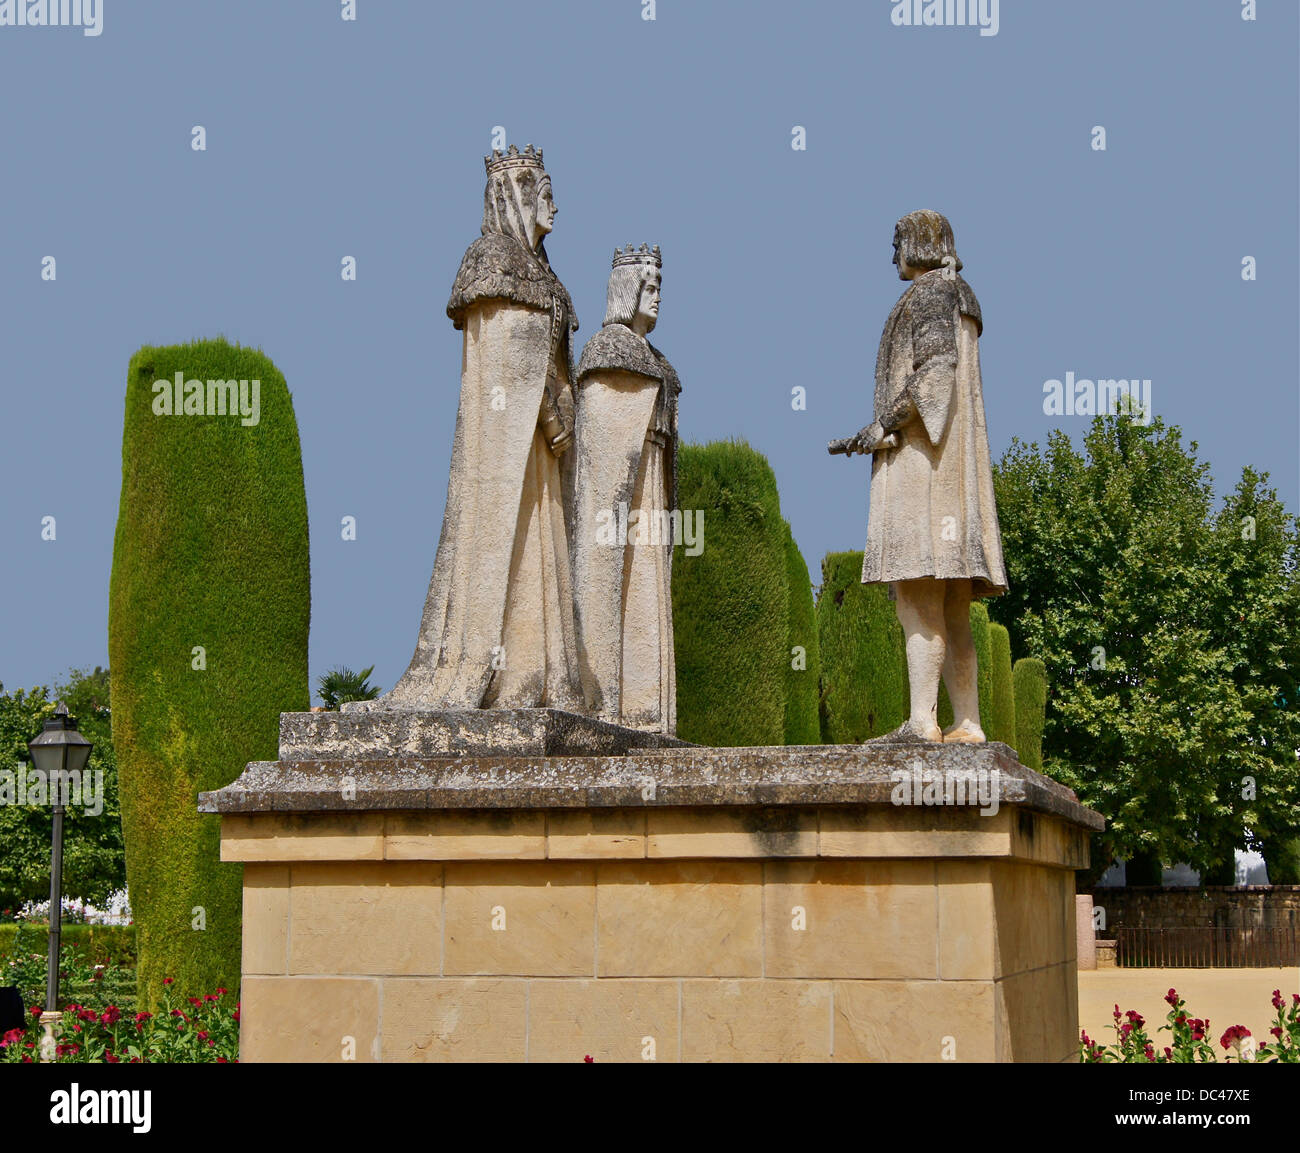 Isabel of Castile, Fernando of Aragon, and Christopher Columbus, statues in the garden of the Alcazar of Cordoba, - Stock Image